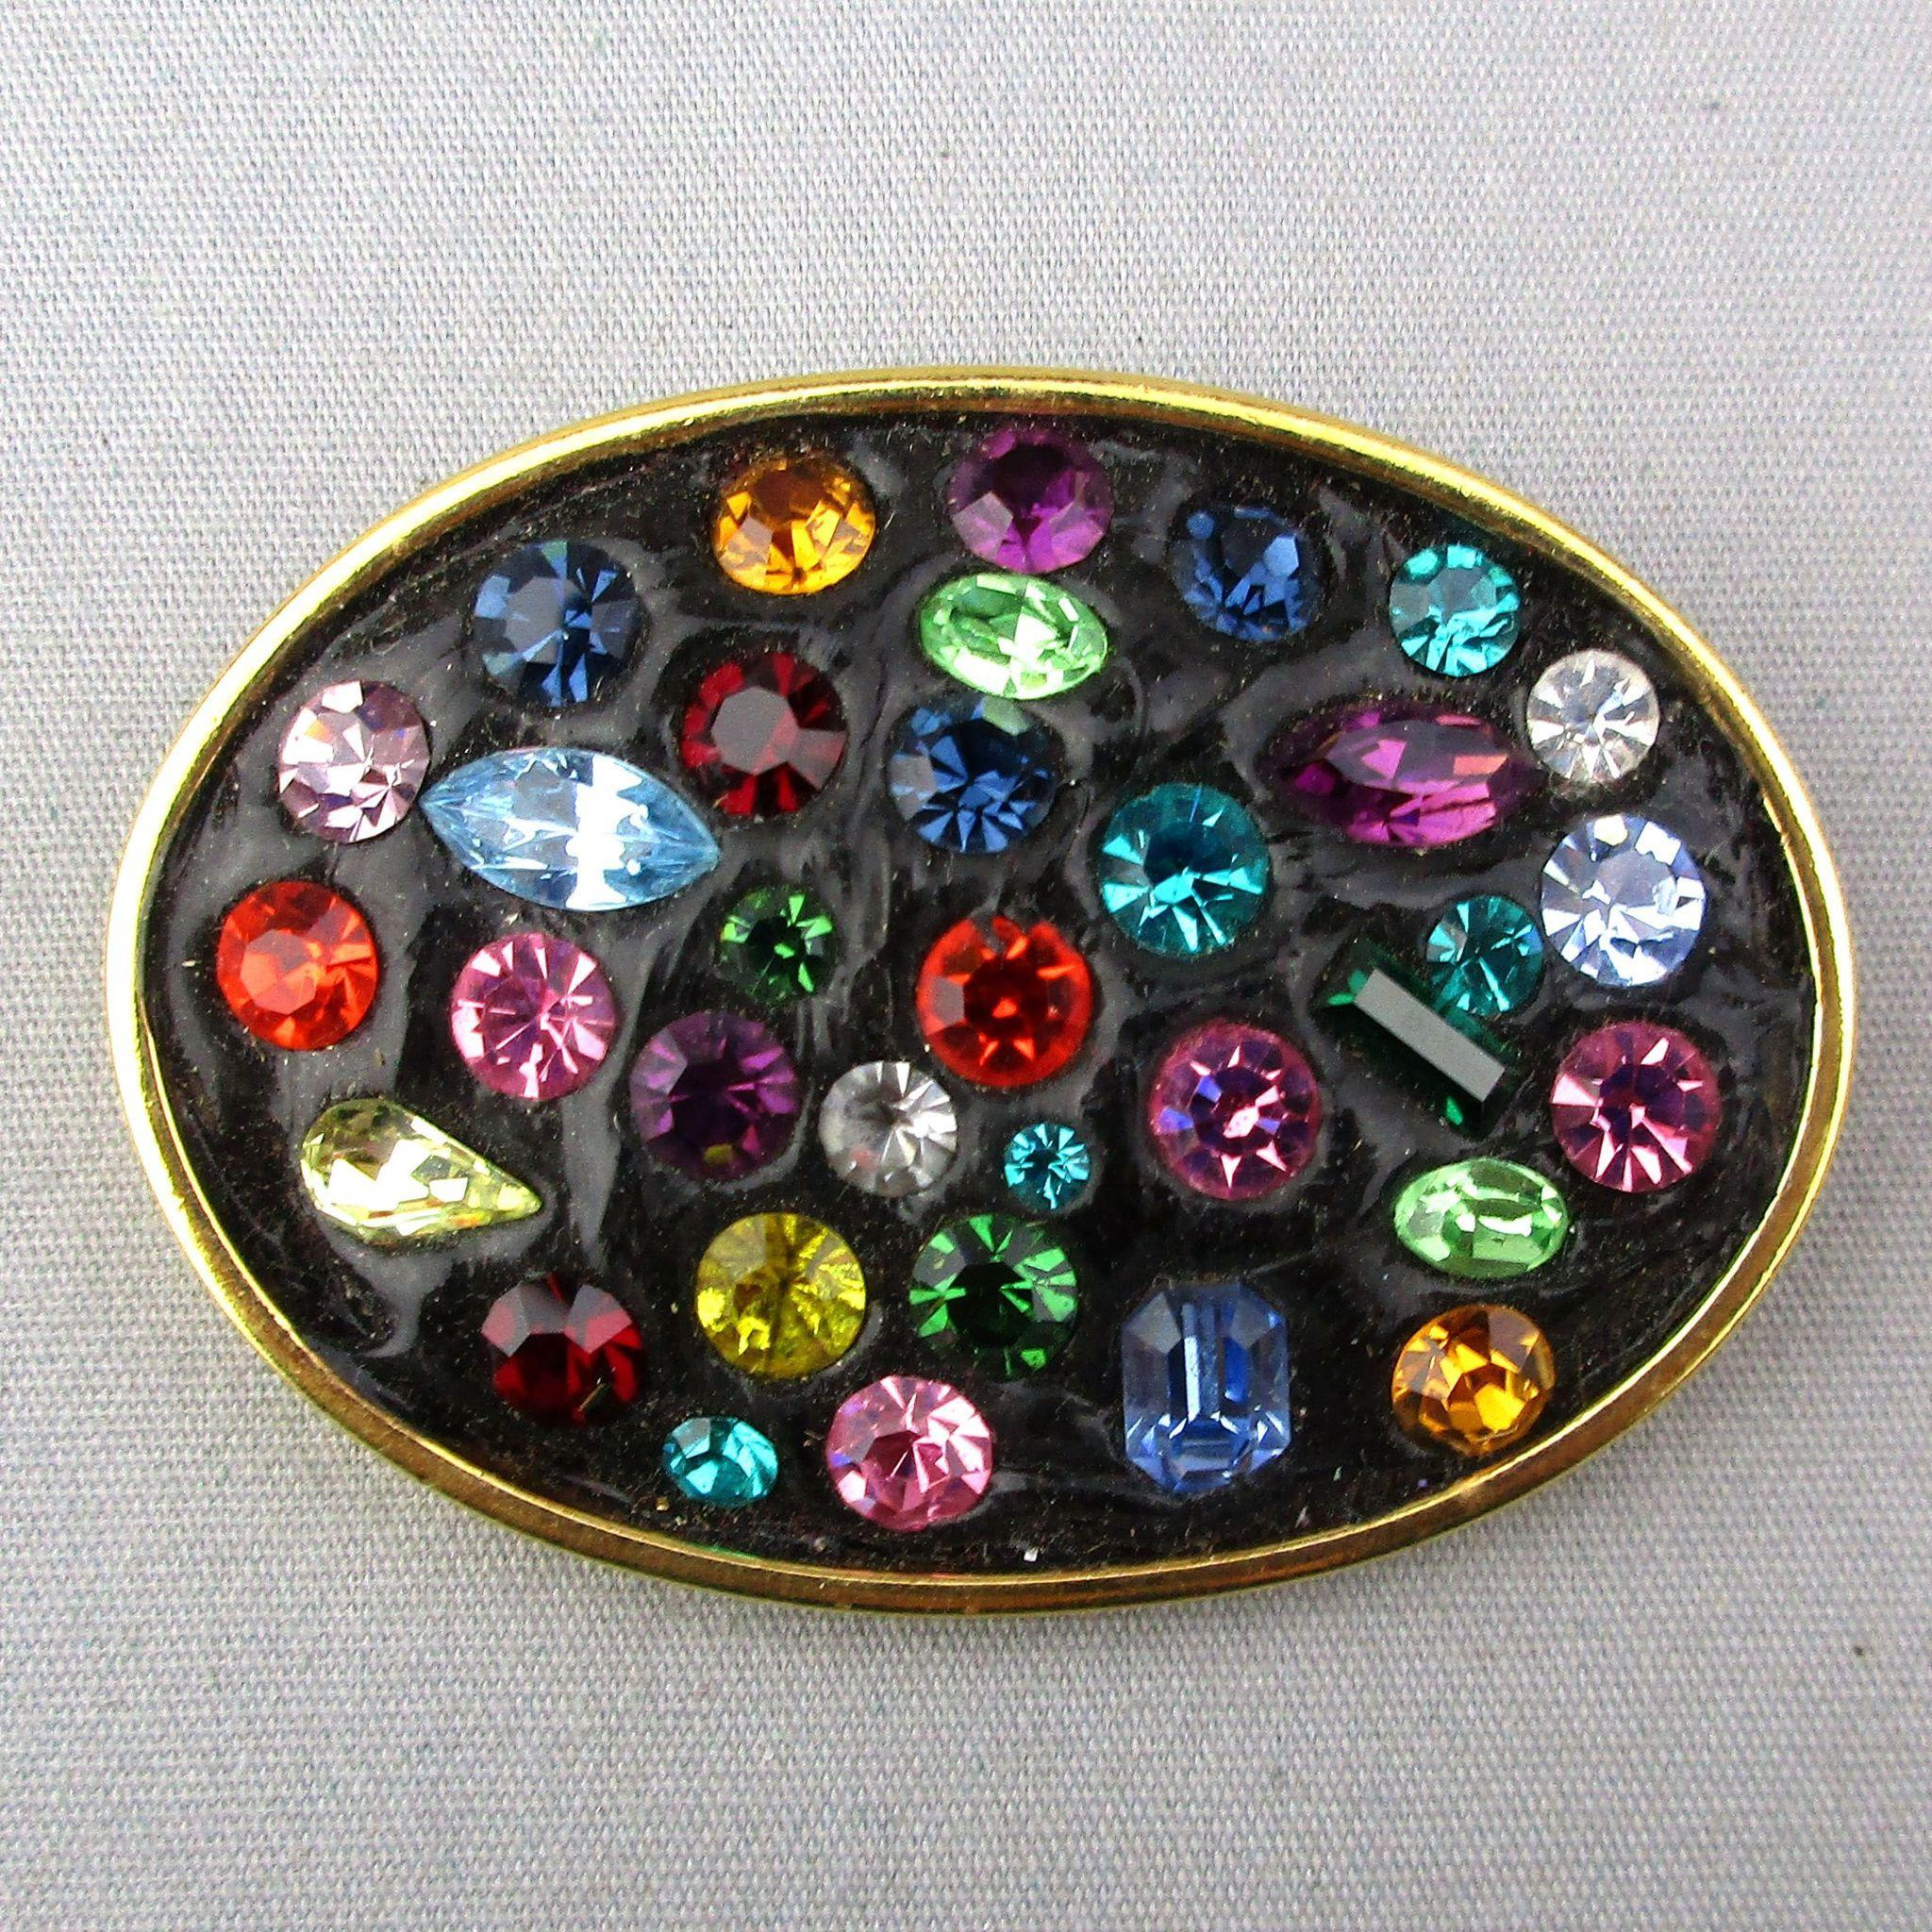 Vintage Rhinestone Pin - Multi-Color Stones in Black Glass